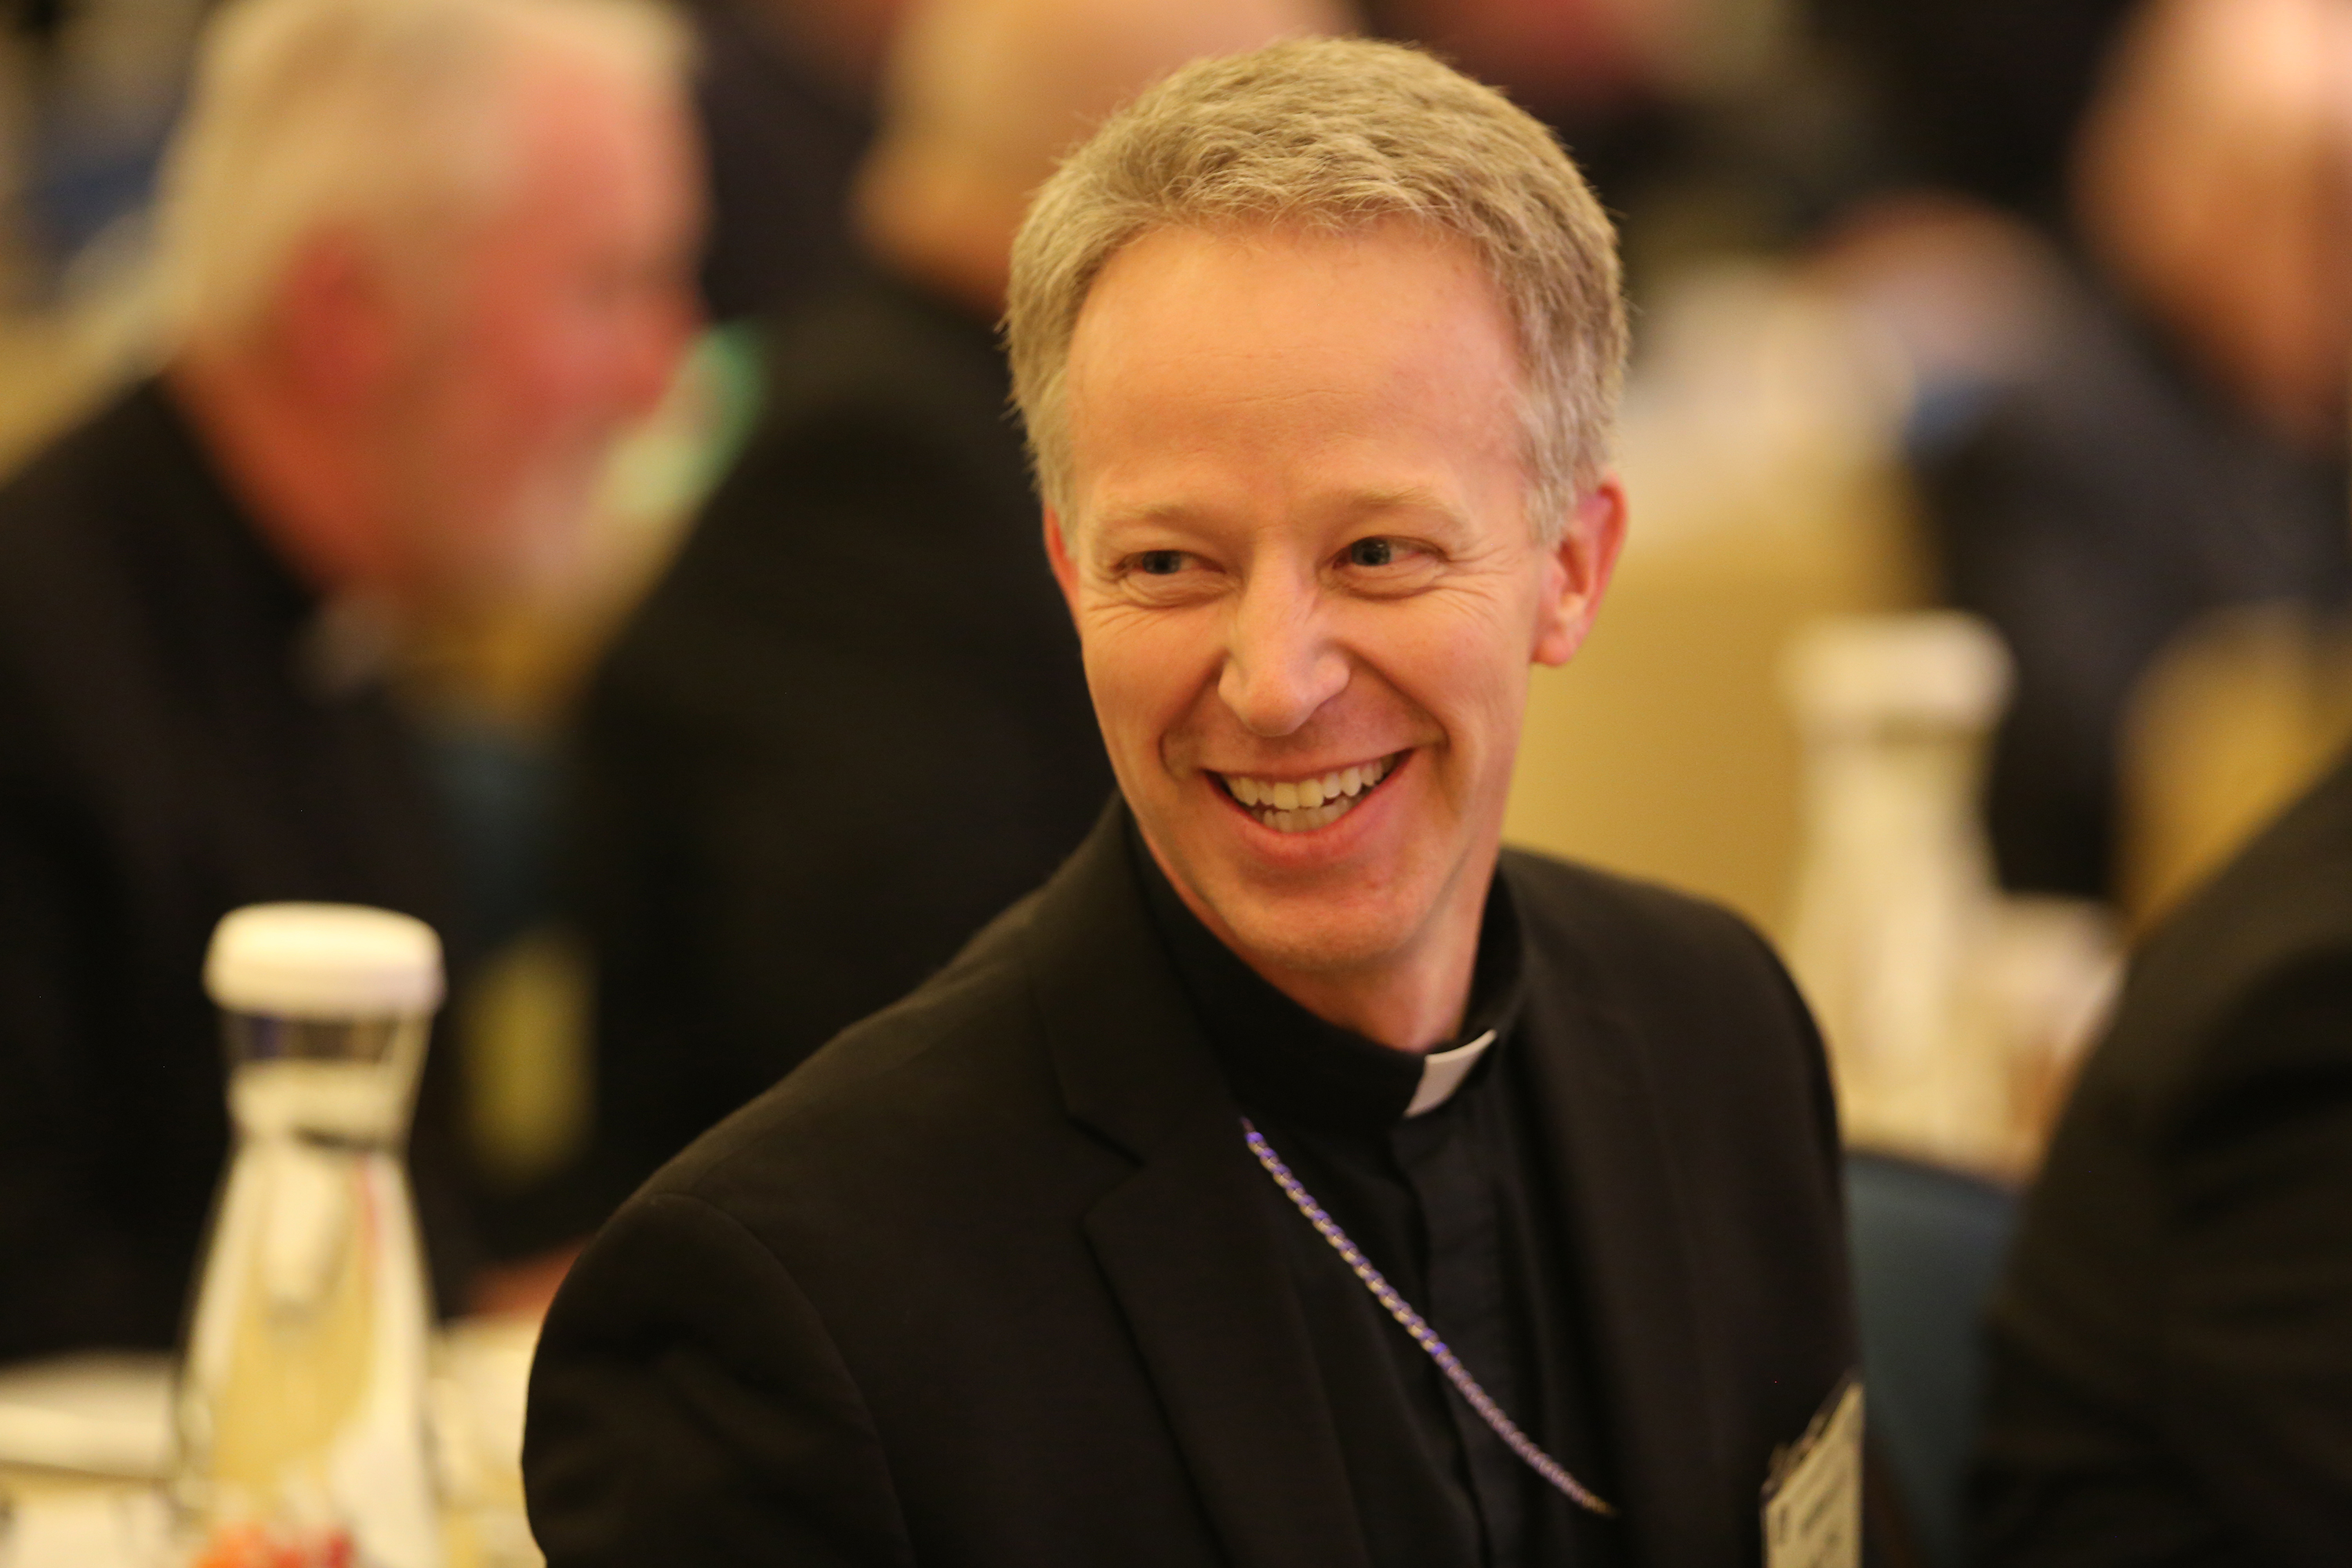 Us bishops take on immigration racism at fall assembly todays bishop william a wack of pensacola tallahassee fla smiles nov 13 during the fall general assembly of the us conference of catholic bishops in kristyandbryce Image collections